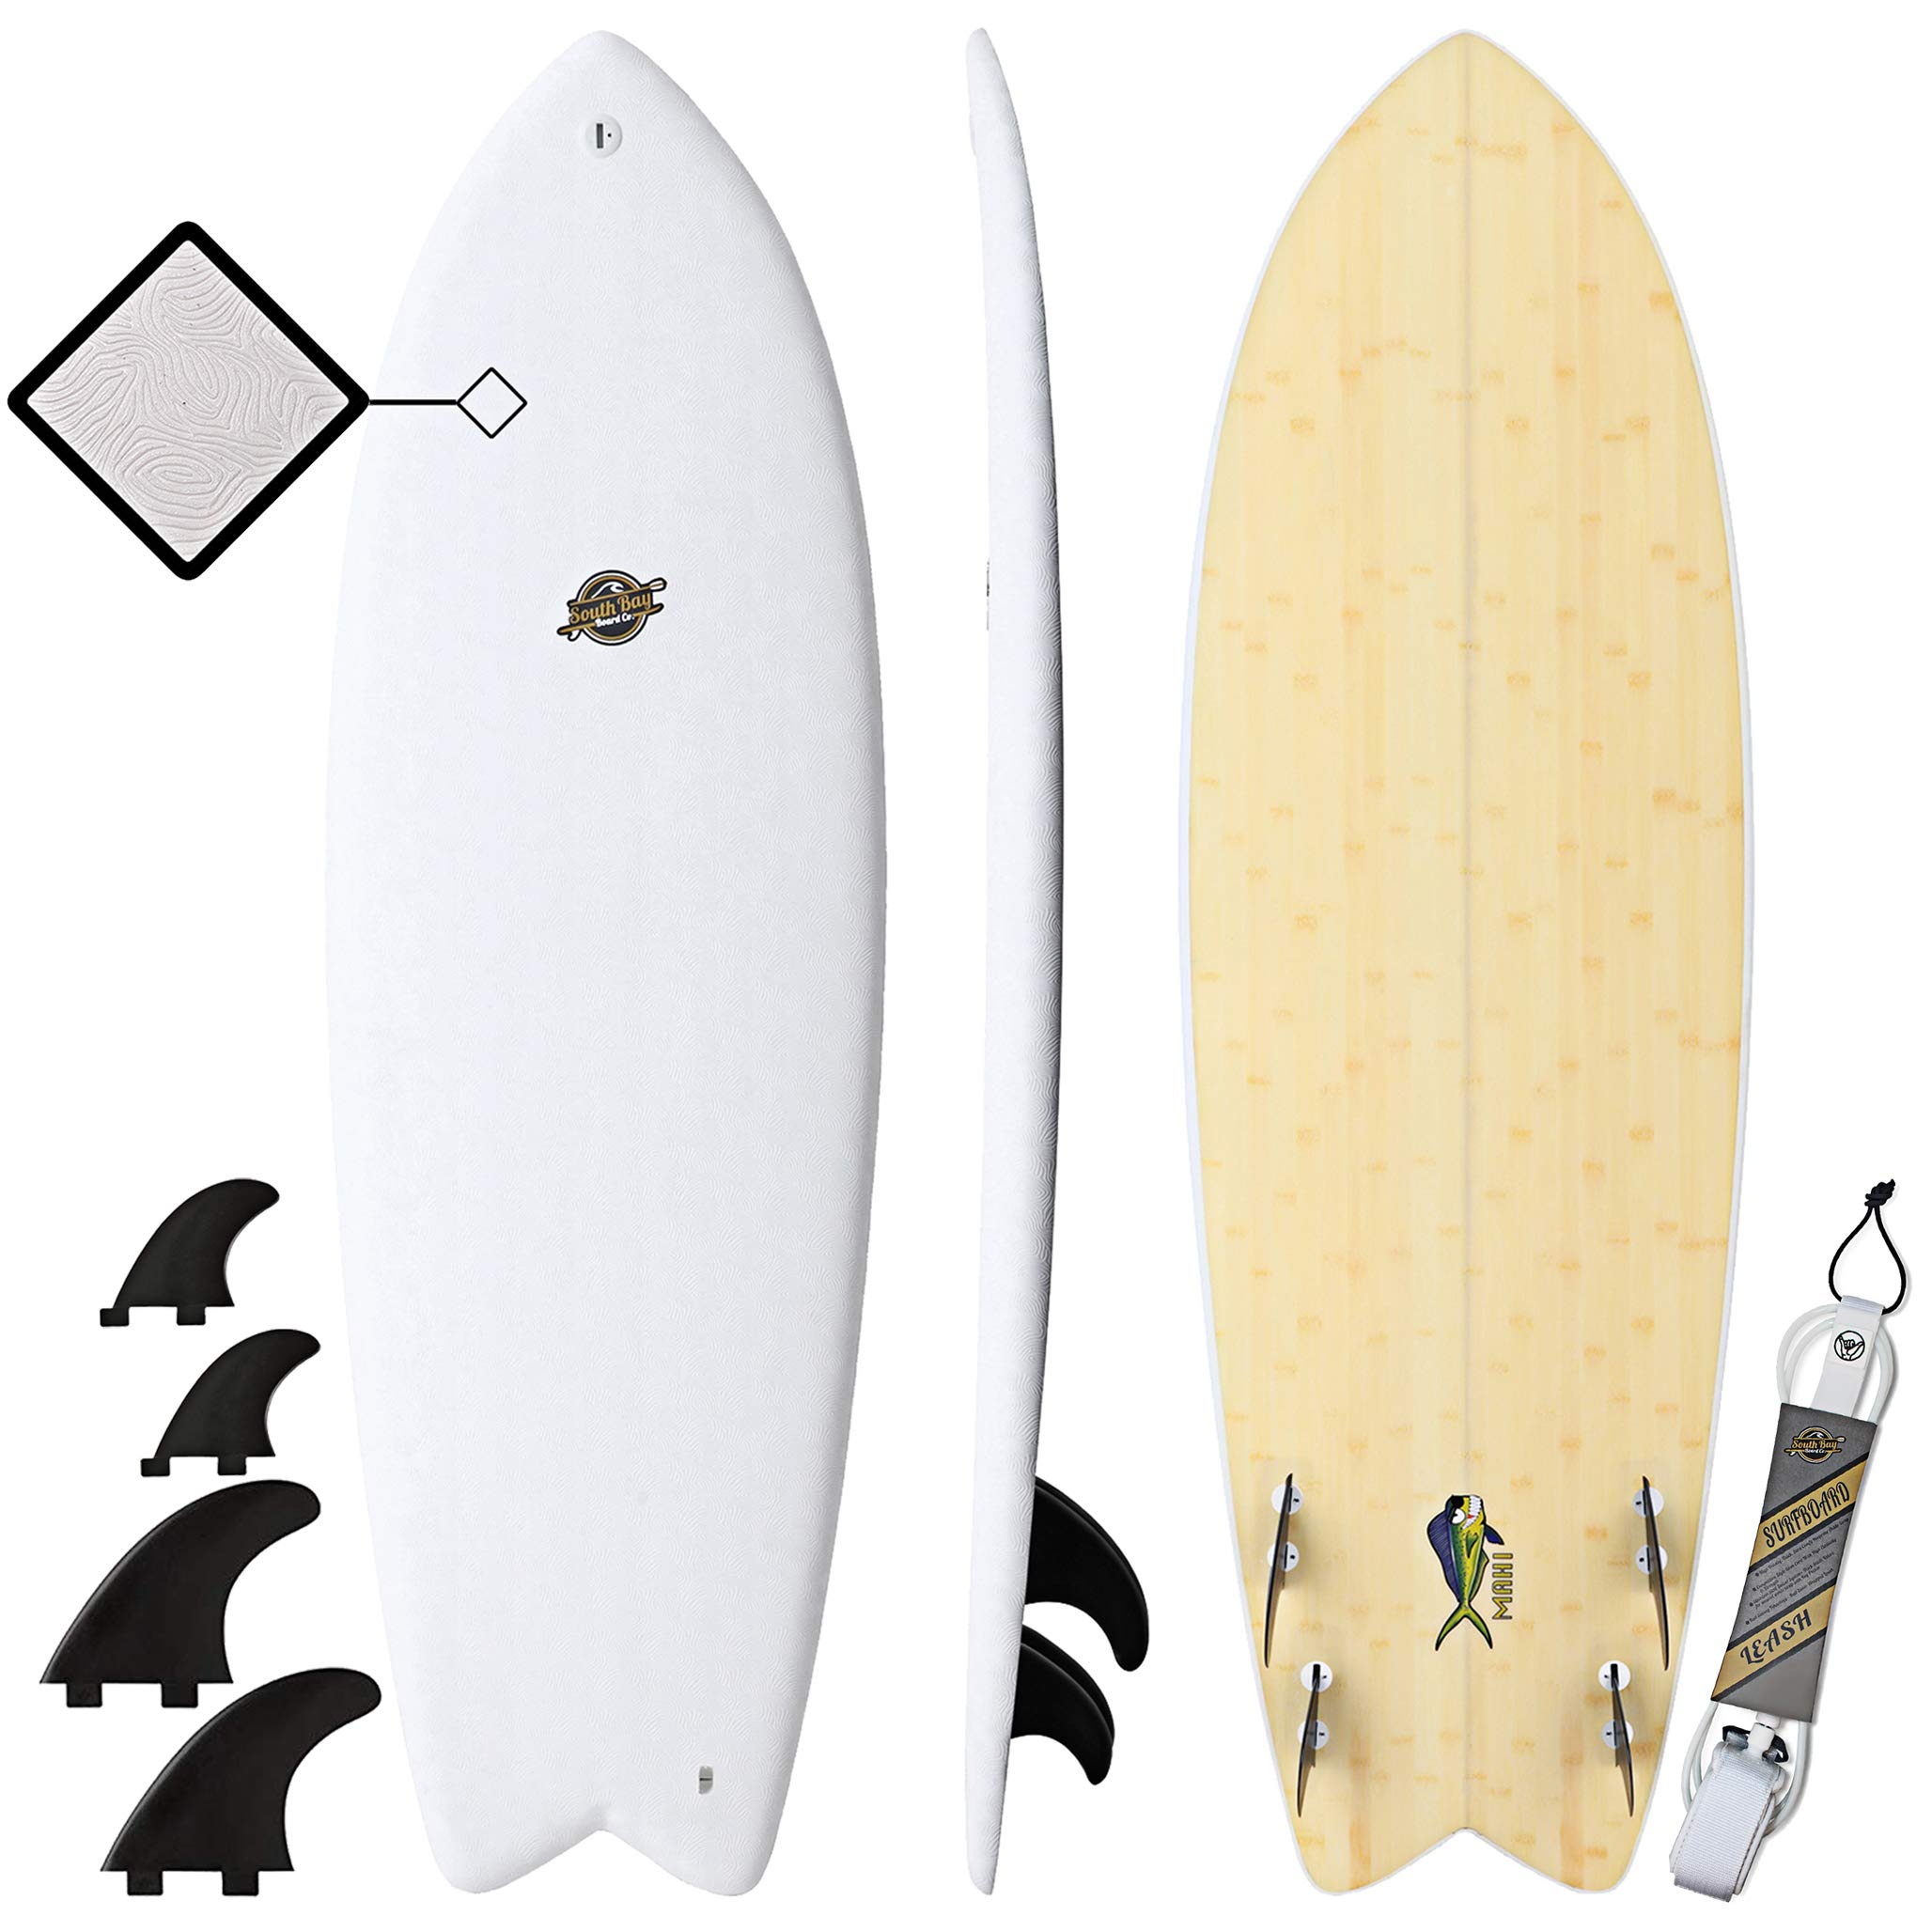 Gold Coast Surfboards - 5'8 Hybrid Soft Top Surfboard -The Mahi -No Wax Needed Soft Foam Surfboard Deck, Rubber Logo, GoPro Mount + Bamboo Bottom Deck - Fish Shape Surfboard with FCSII Fin Boxes by South Bay Board Co.